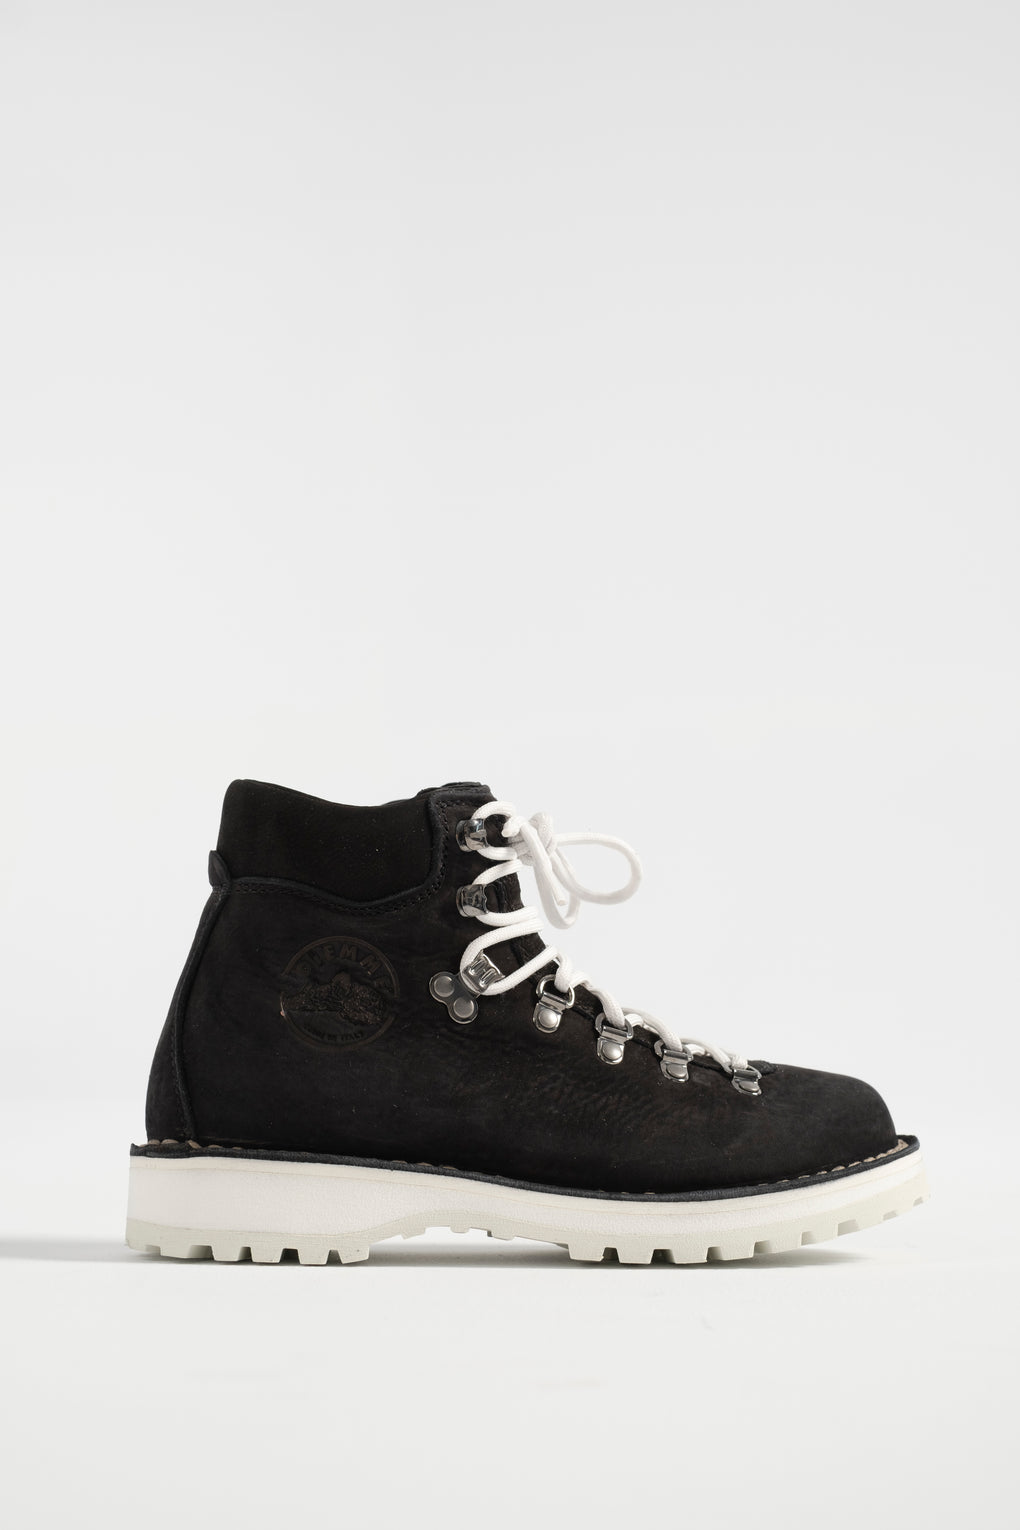 Diemme-Diemme Roccia Boot-black boot-black winter boot-Diemme boots-Idun-St. Paul